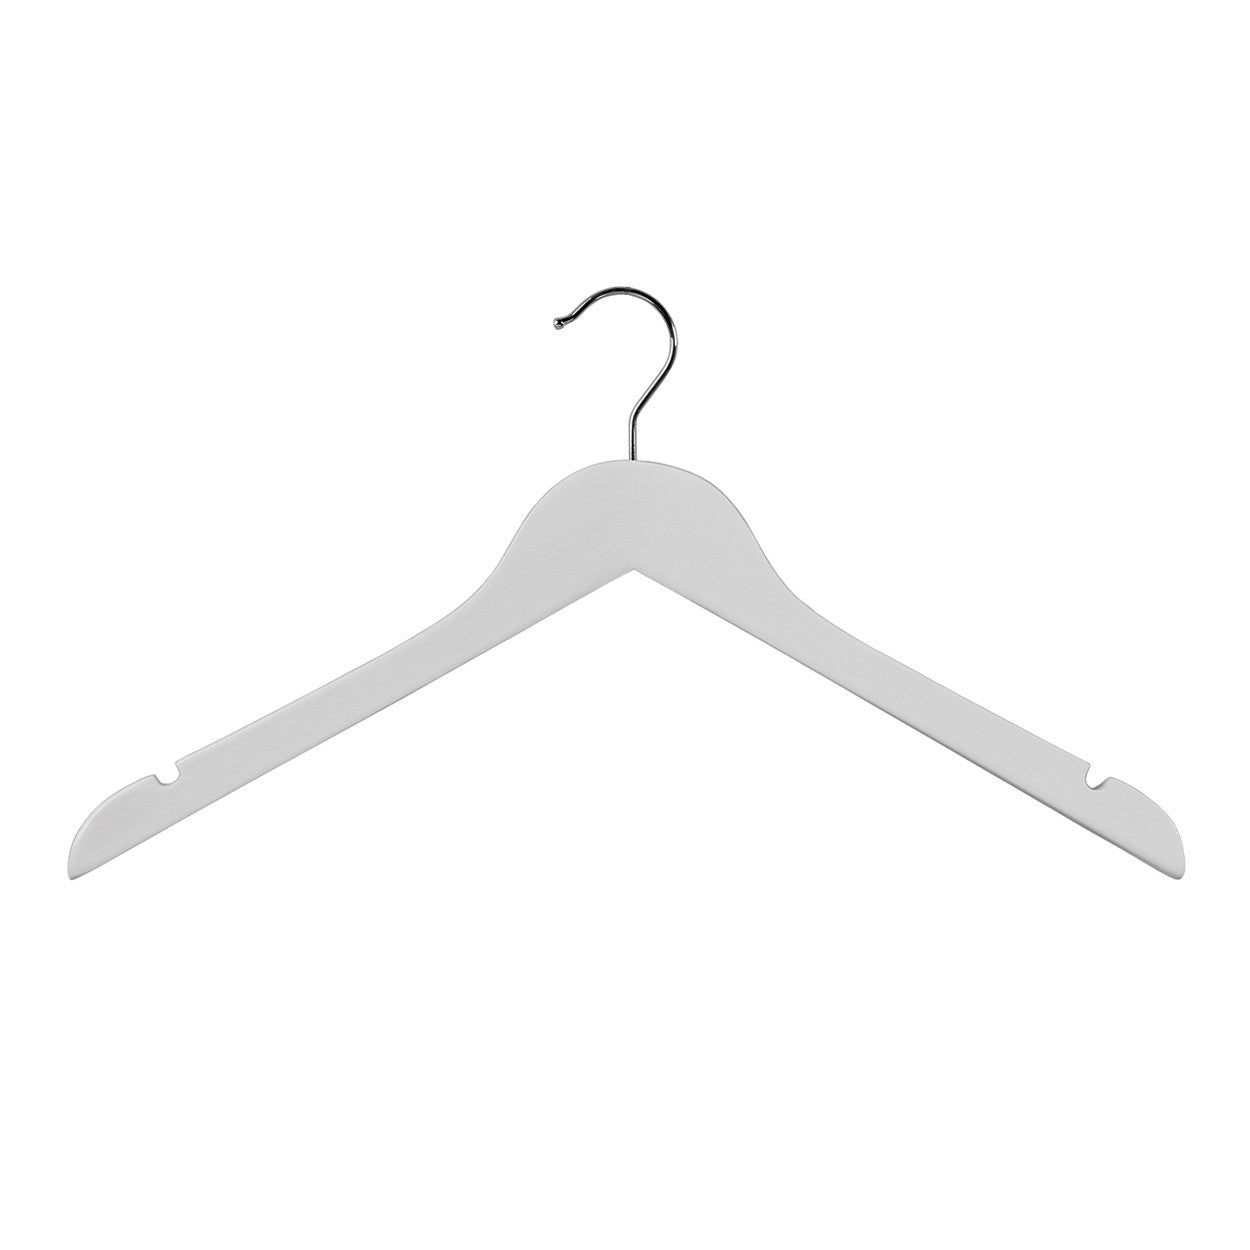 White Top Timber Wishbone Hanger With Notches 440 W X 14Mm Thick White (Box of 100)